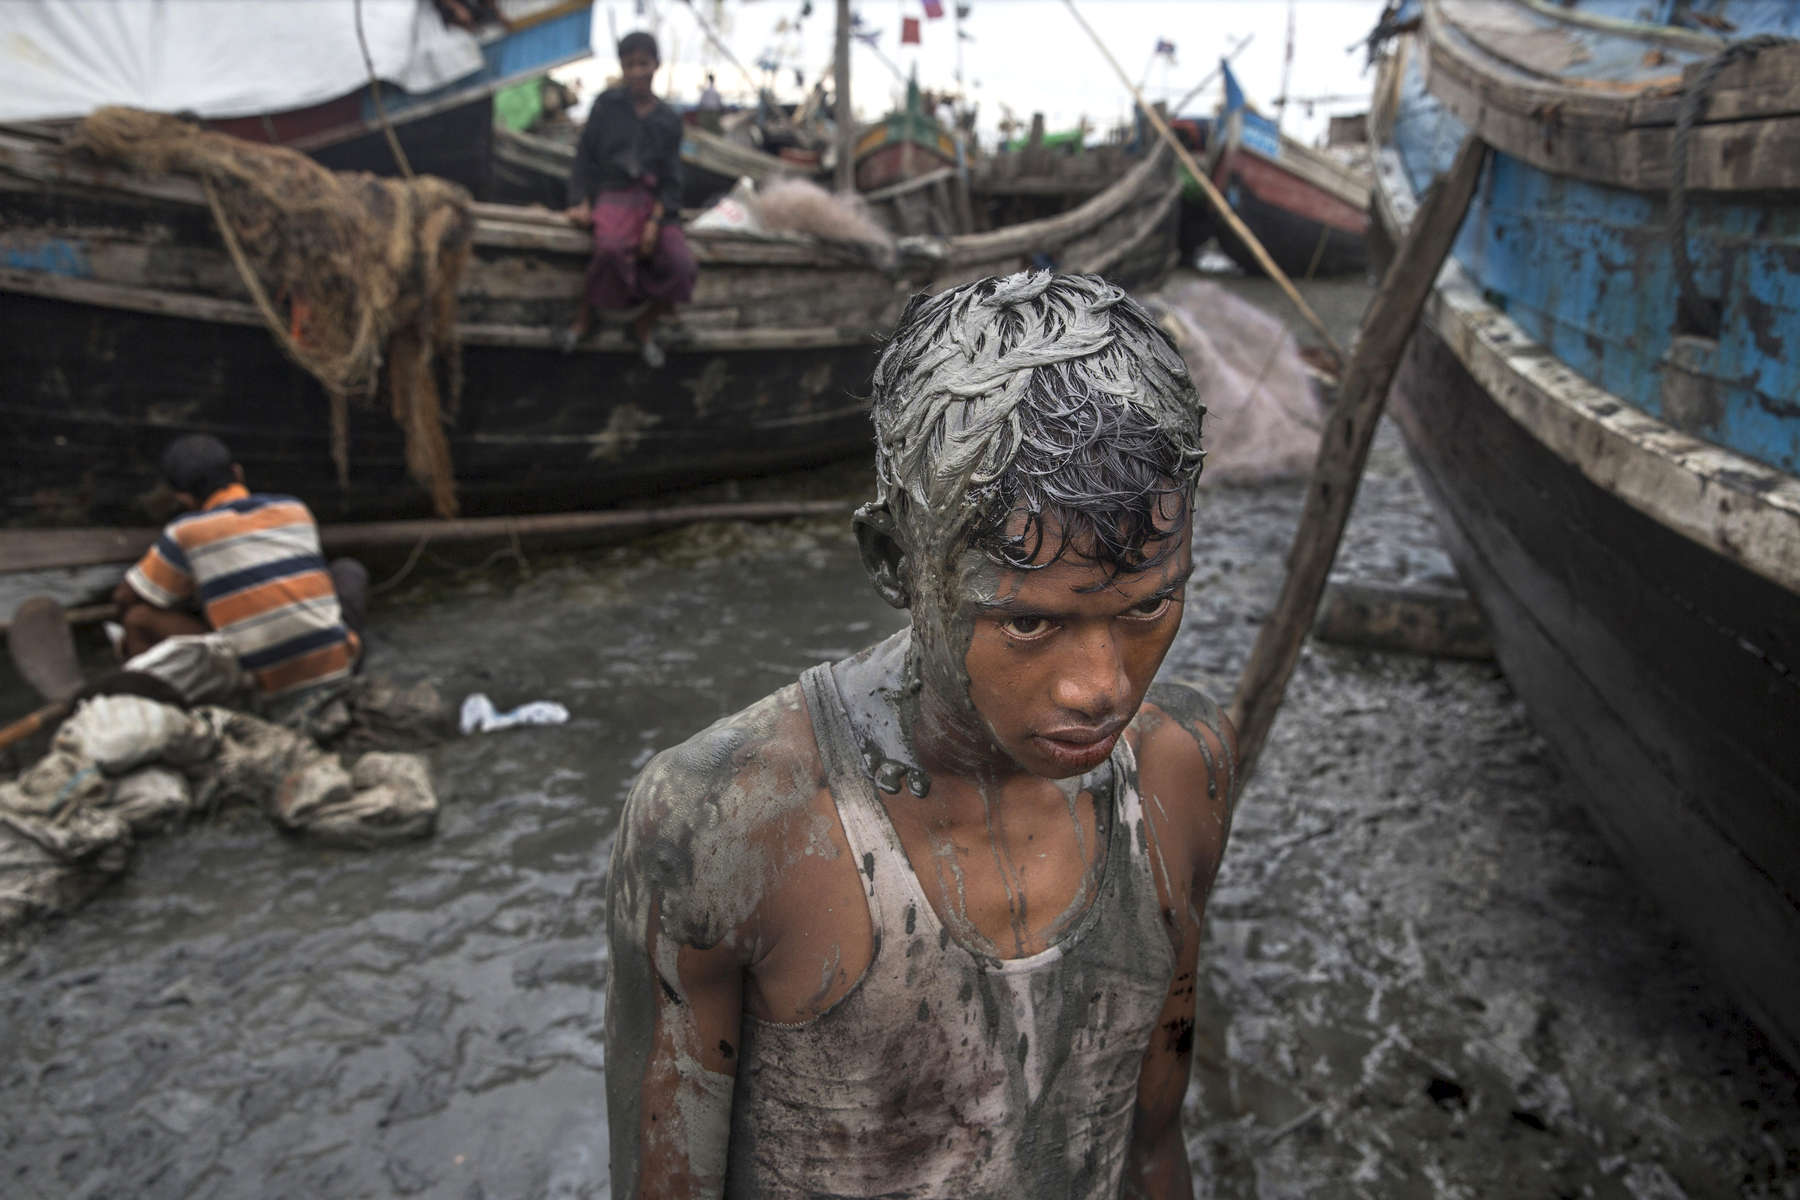 SITTWE - NOV 8: Mohammed Nur Amin takes a break from  working on an open wooden boat at the Ohn Taw Shi, a fishing village at the Rohingya IDP camp outside of Sittwe. Many Rohingya talk of fleeing, some want to go to the Malaysia.Paula Bronstein for The Washington Post